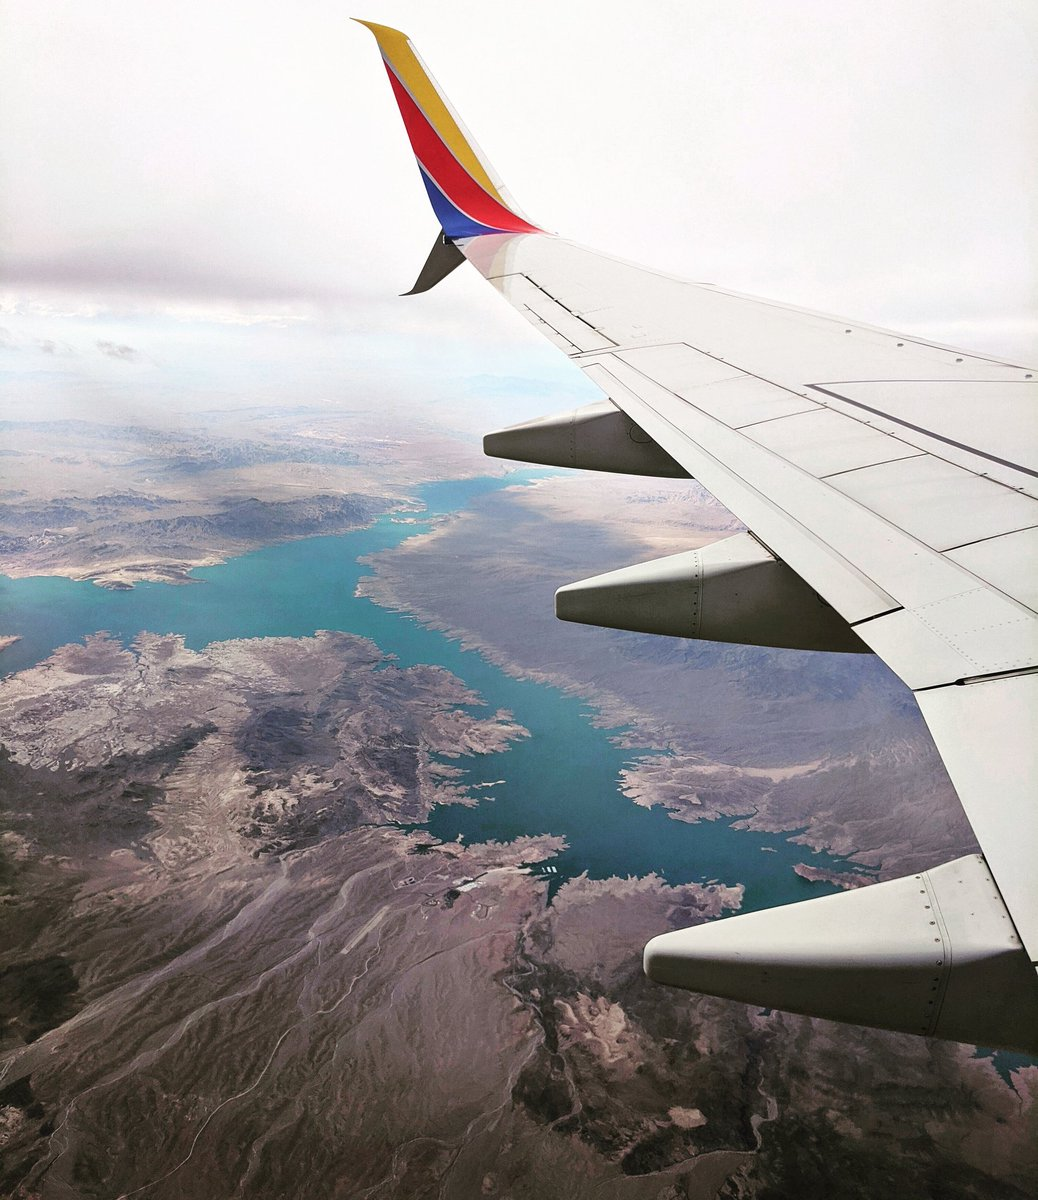 Had the best window seat views when I left Las Vegas last time. Its one of my top 5 now 🤗 Not to mention I could see my daughters house and where she works 💙 Im really missing travel today ☹️ Share your favorite #WindowSeatWednesday #WingshotWednesday